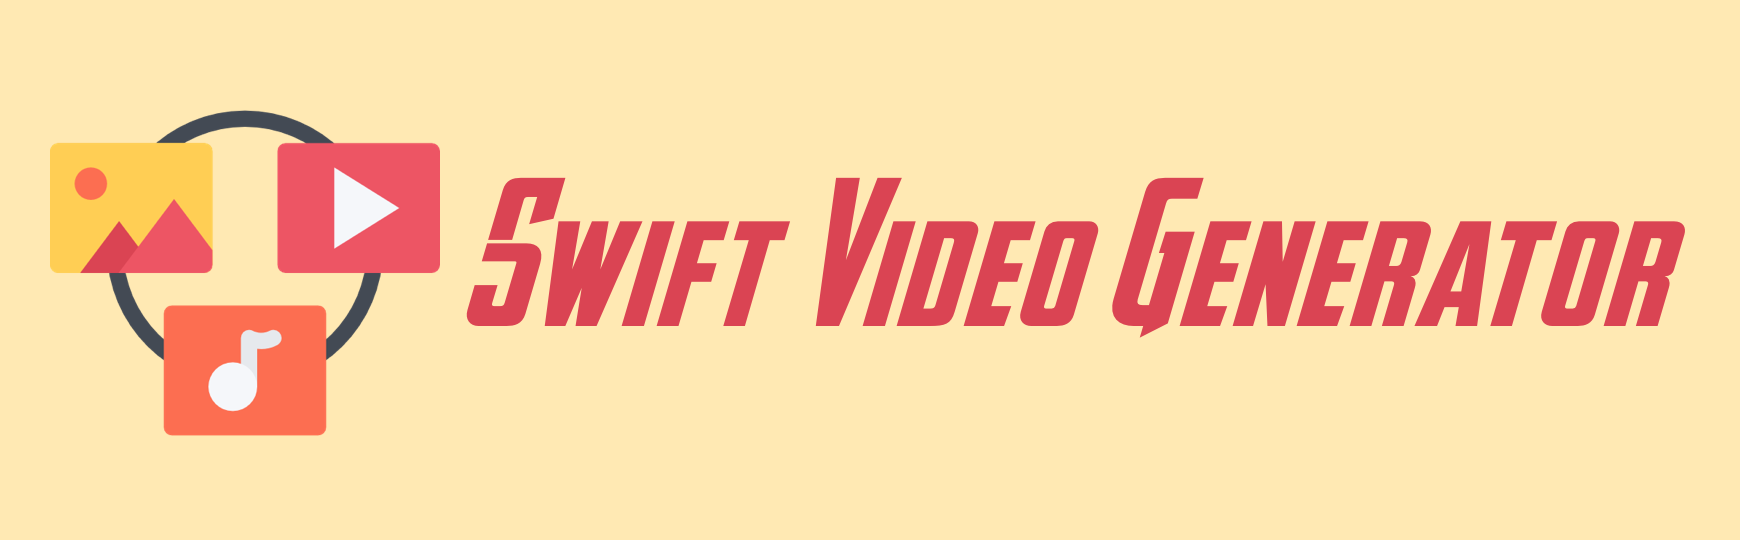 swift-video-generator-logo